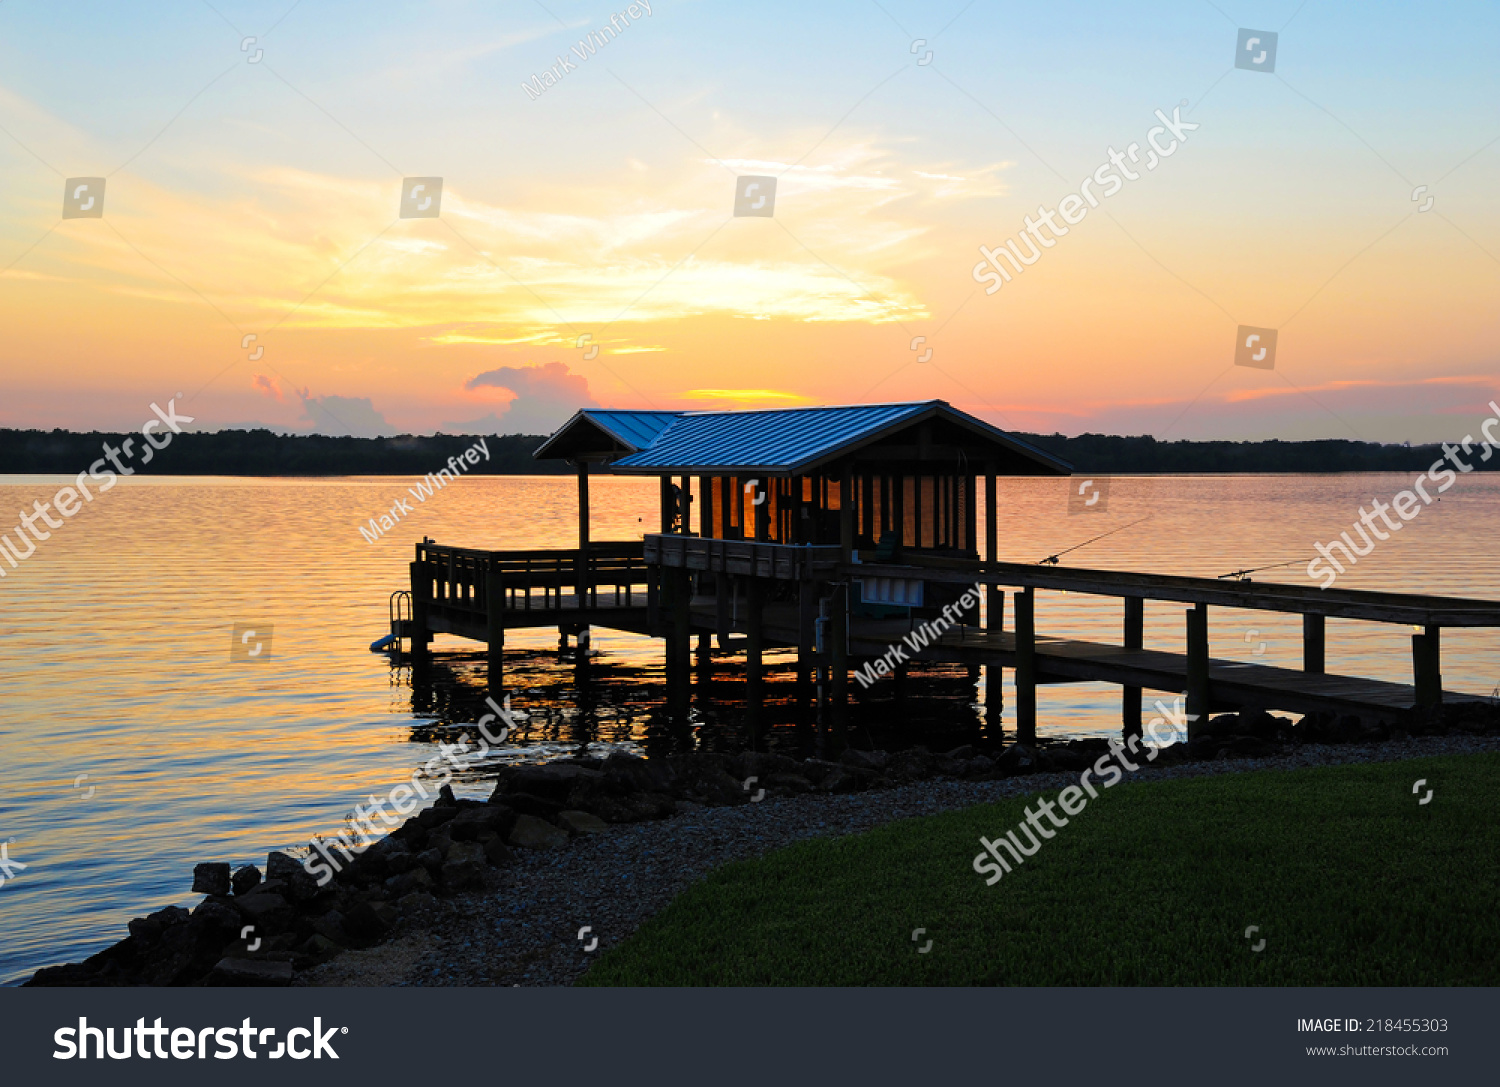 stock-photo-fishing-boat-dock-at-sunset-